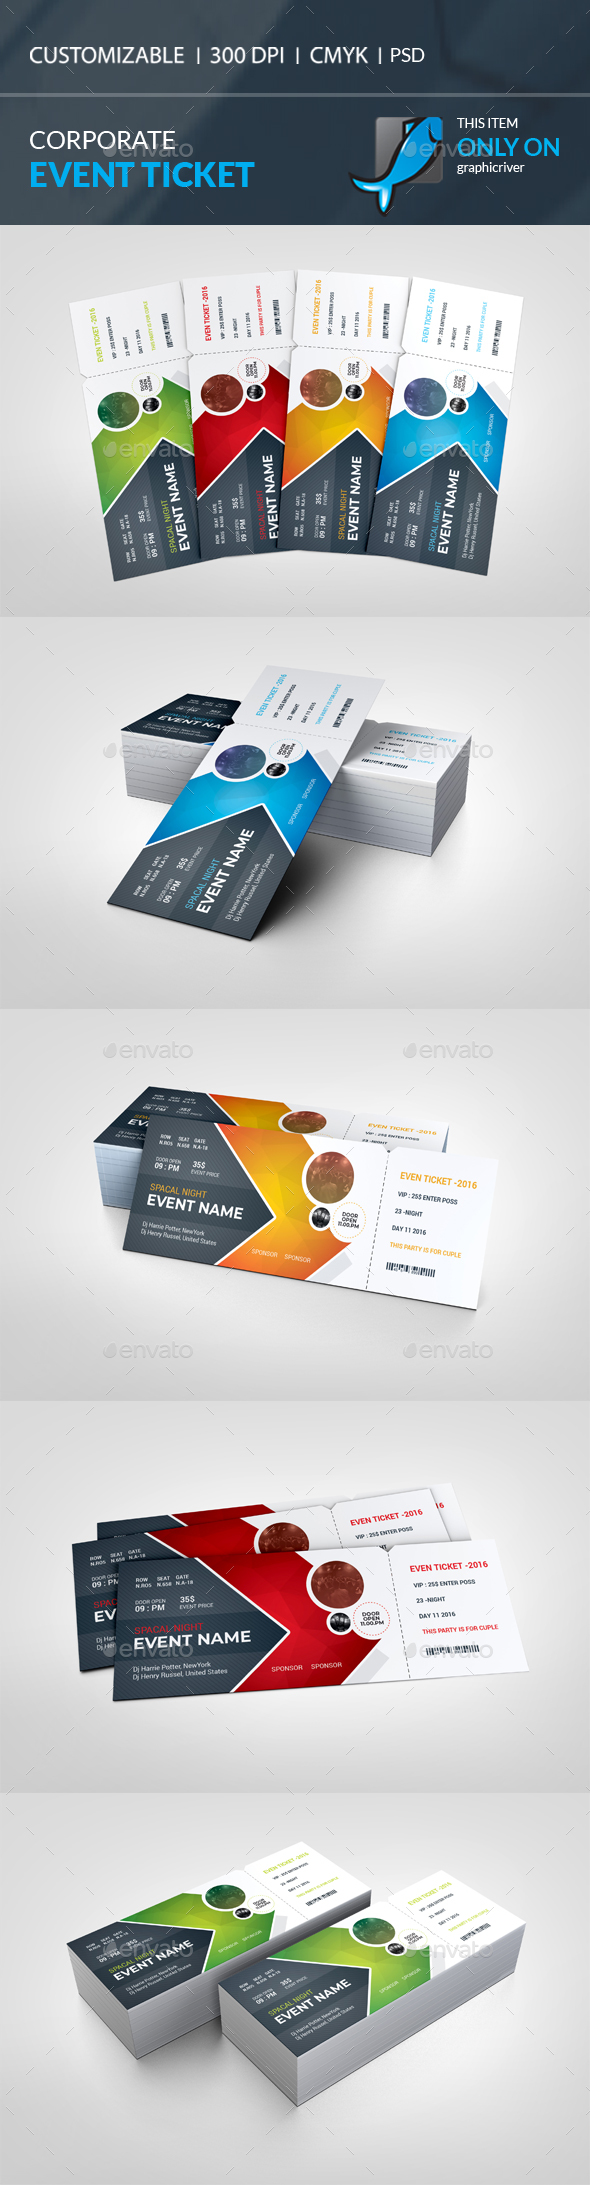 Event Ticket - Cards & Invites Print Templates